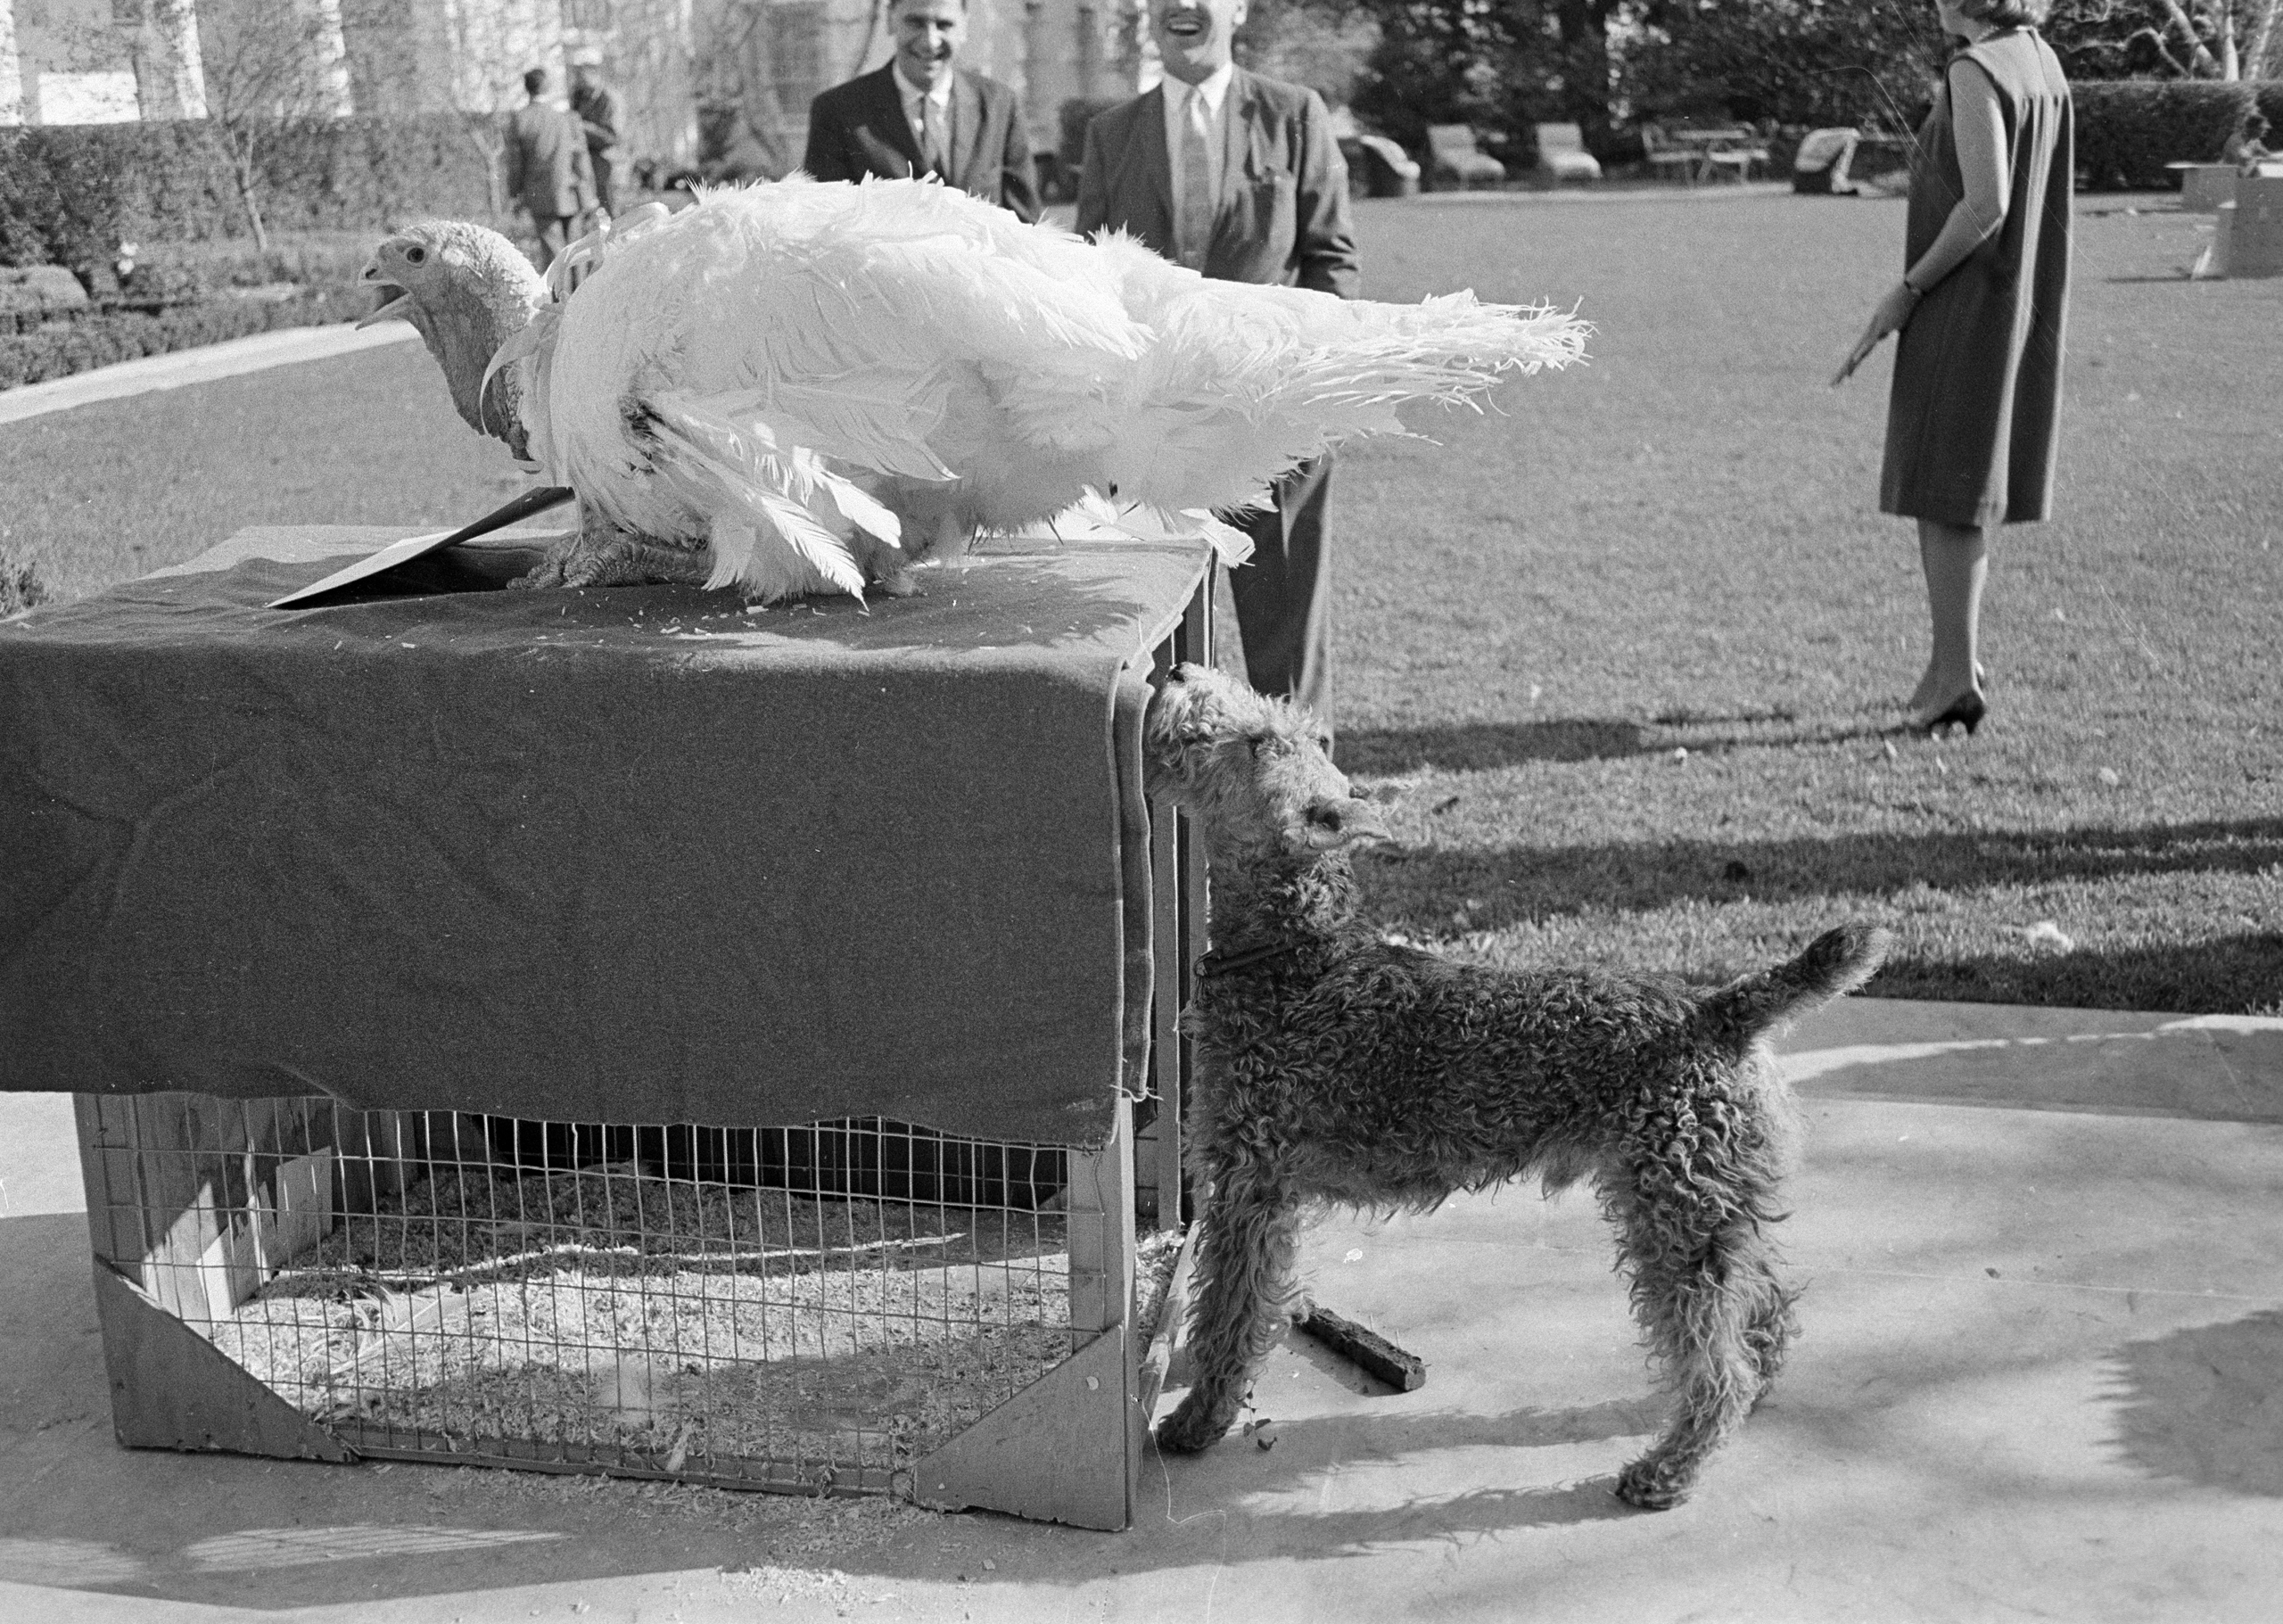 Charlie, Caroline Kennedy's pet Welsh terrier, inspects a turkey presented to President Kennedy after a traditional Thanksgiving week ceremony at the White House, on Nov. 19, 1963.